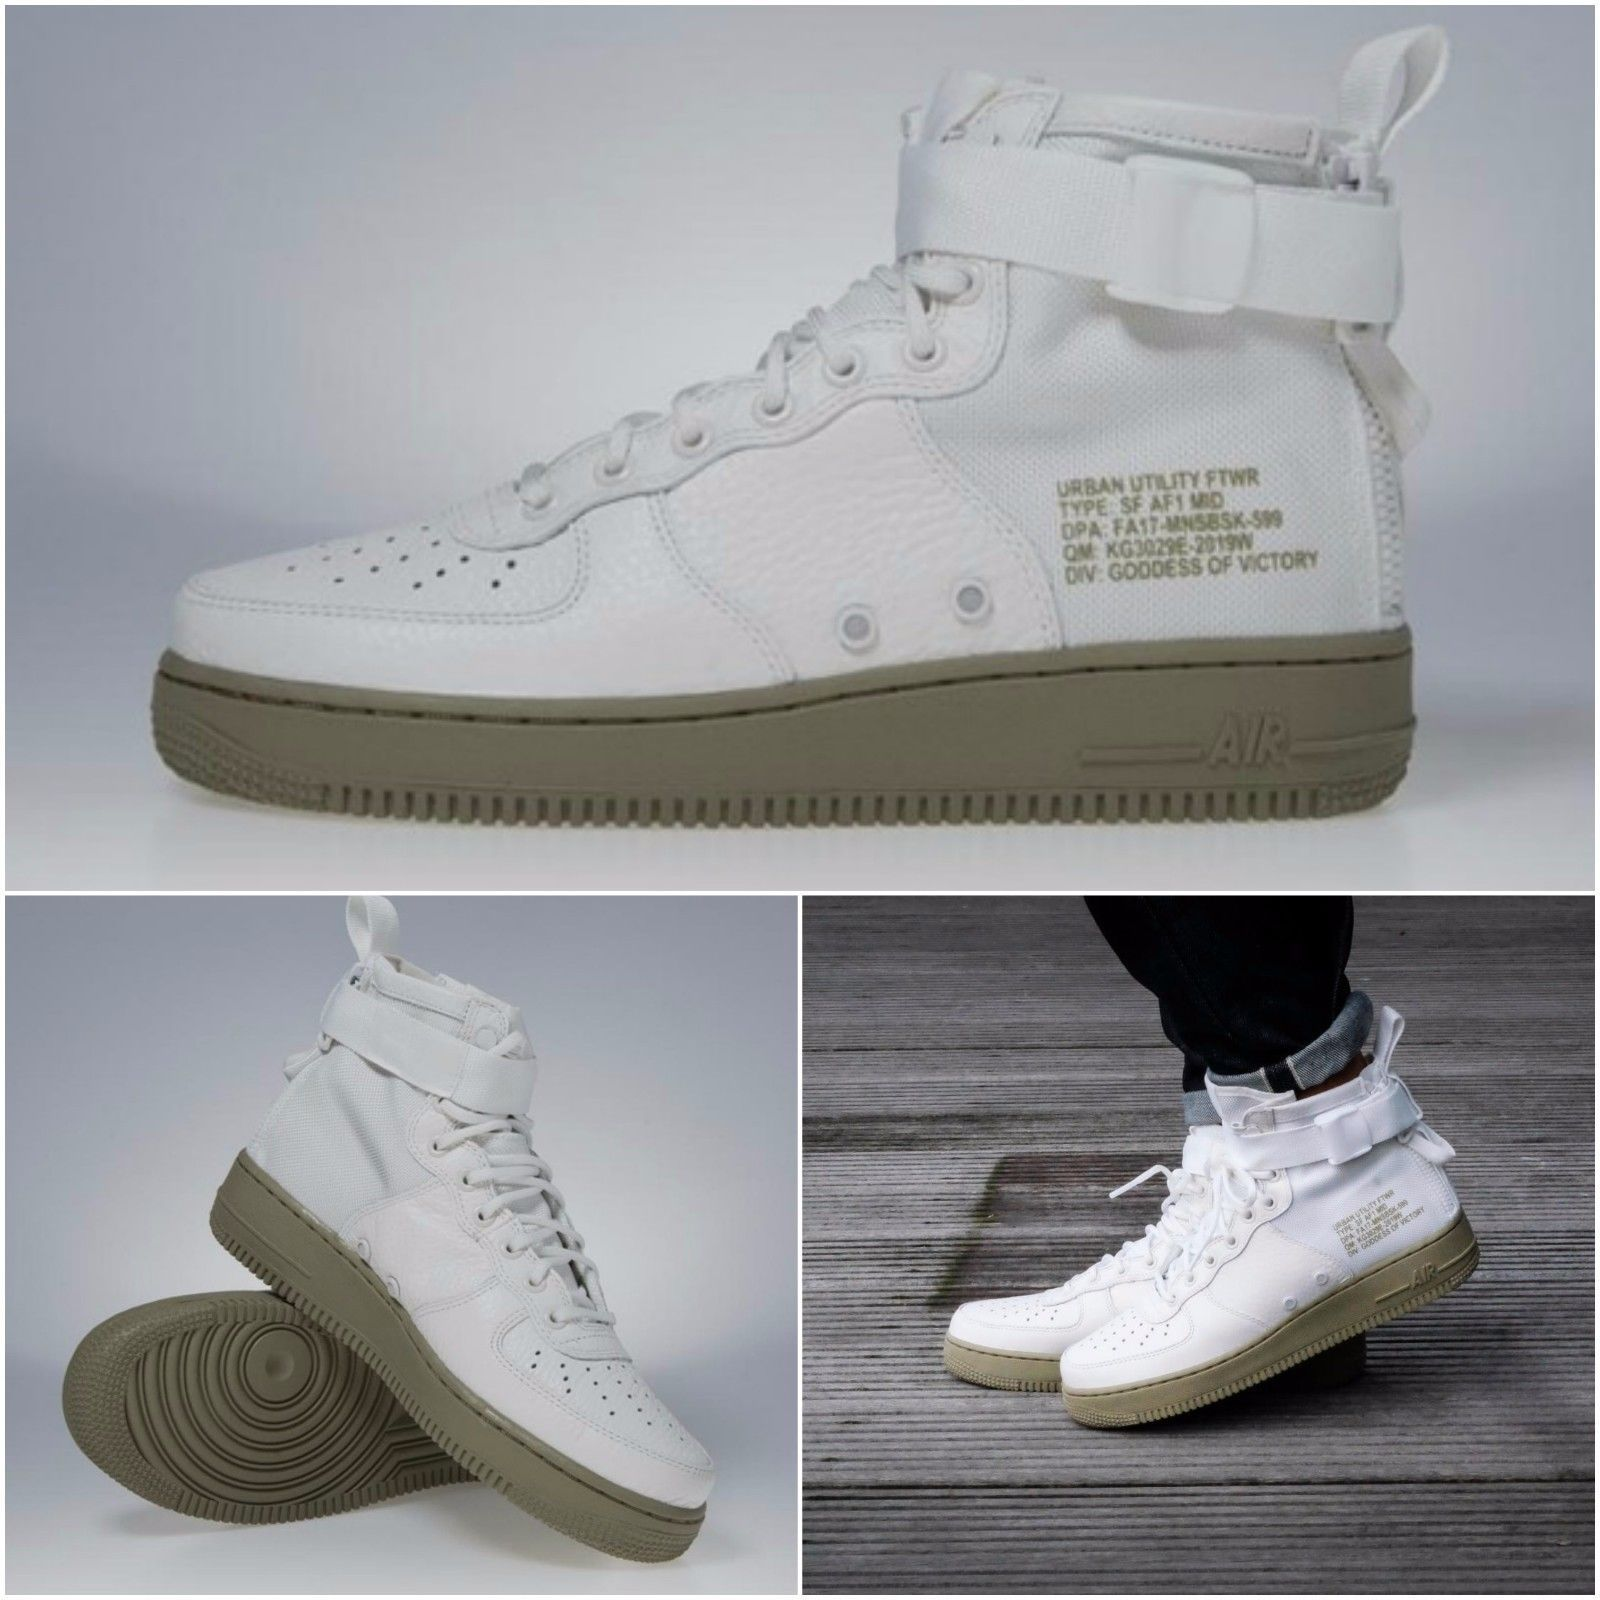 NIKE AIR FORCE ONE AF1 MID IVORY NEUTRAL OLIVE BOOTS 917753 101   nikesportswear  nikeair 94bdfa4a182